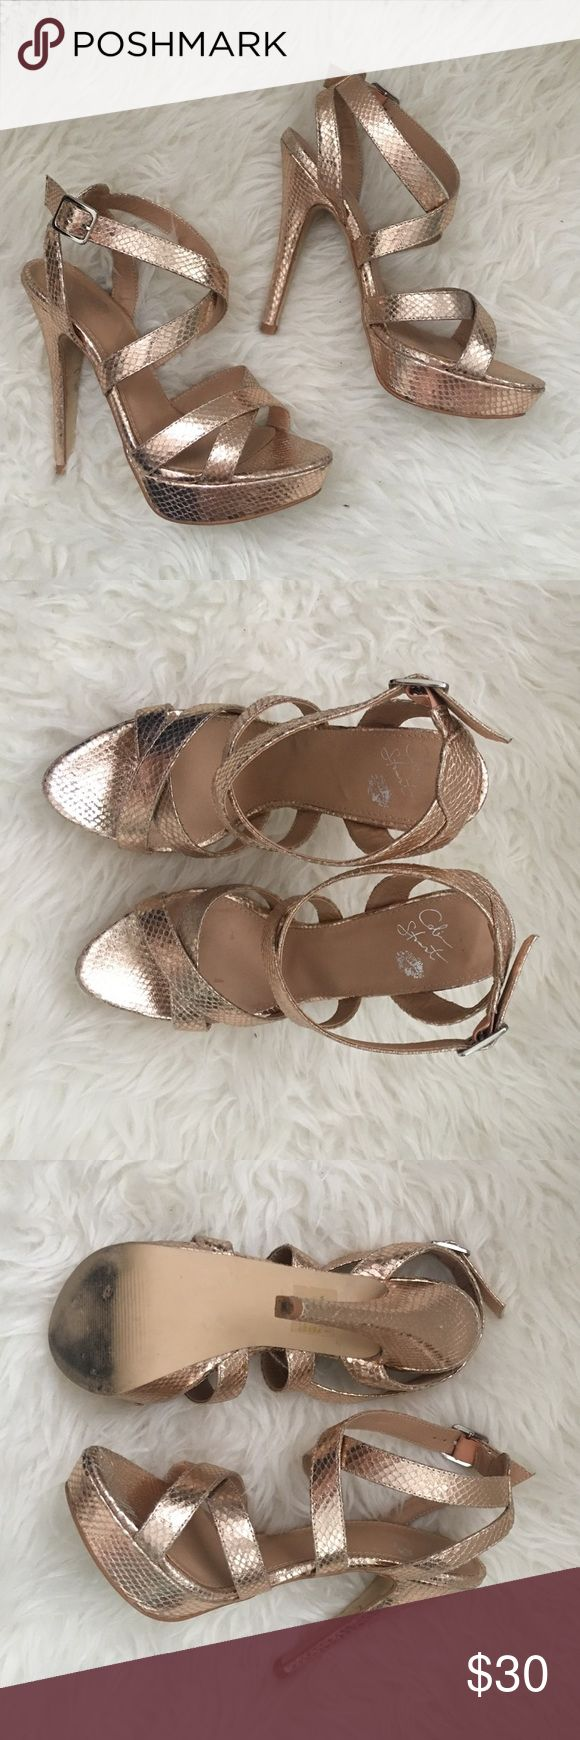 Colin Stuart copper snake skin sandals Excellent condition!! Beautiful strappy sandals from Colin Stuart Colin Stuart Shoes Heels